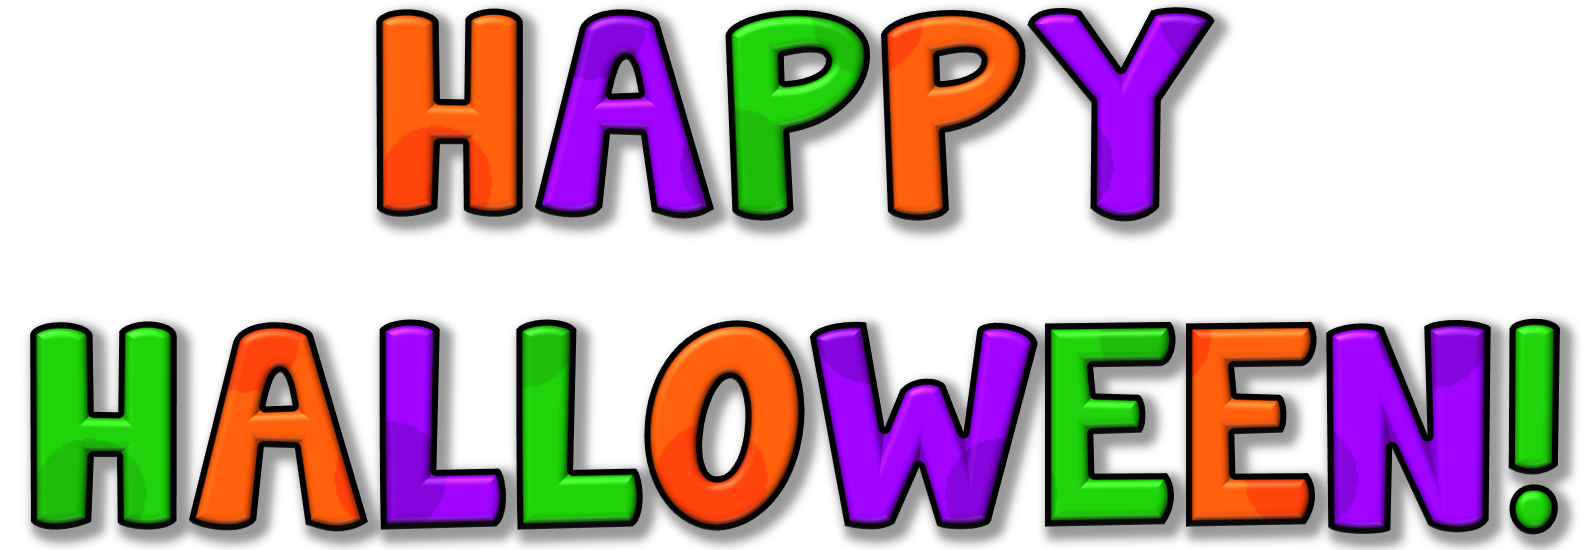 Happy Halloween Clip Art | Clipart Panda - Free Clipart Images